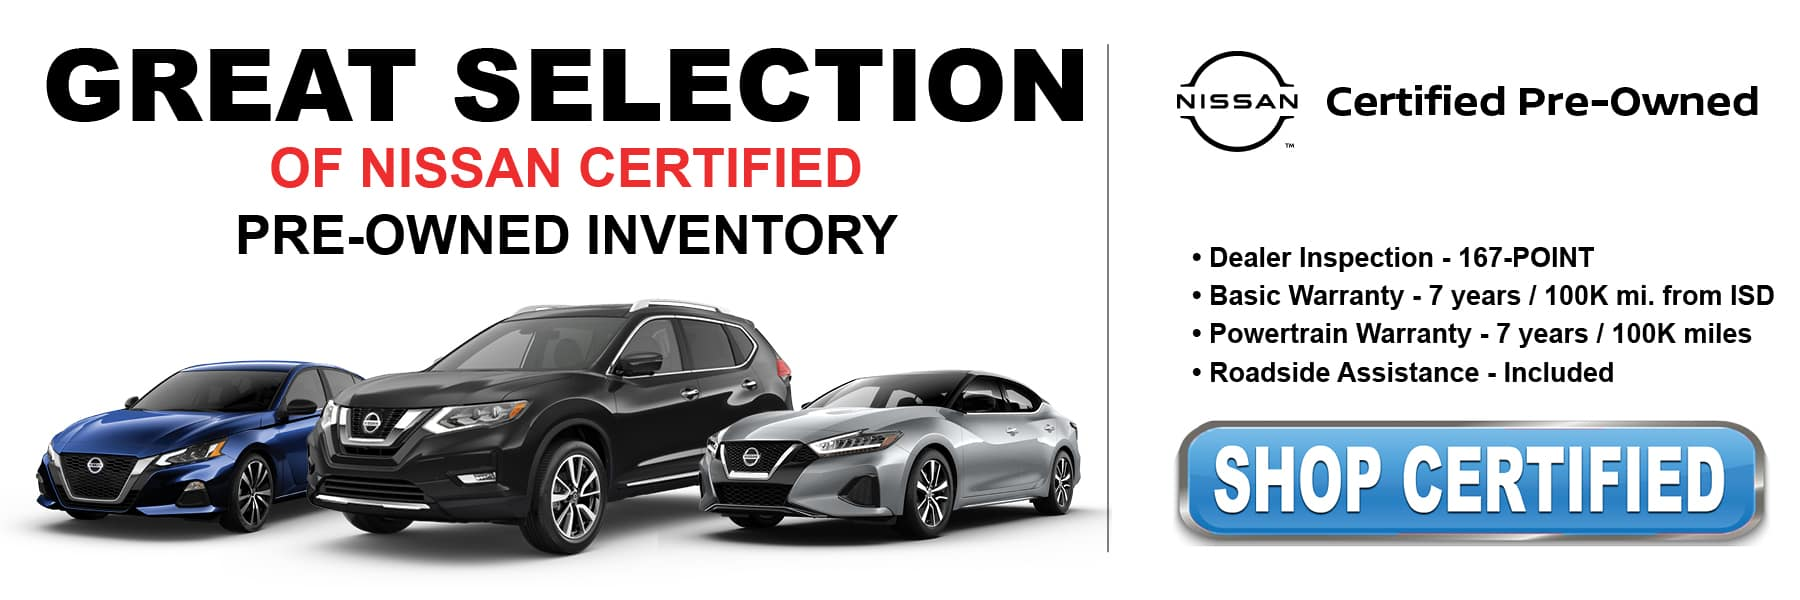 Shop Certified Pre-Owned Inventory at Kelly Nissan of Woburn